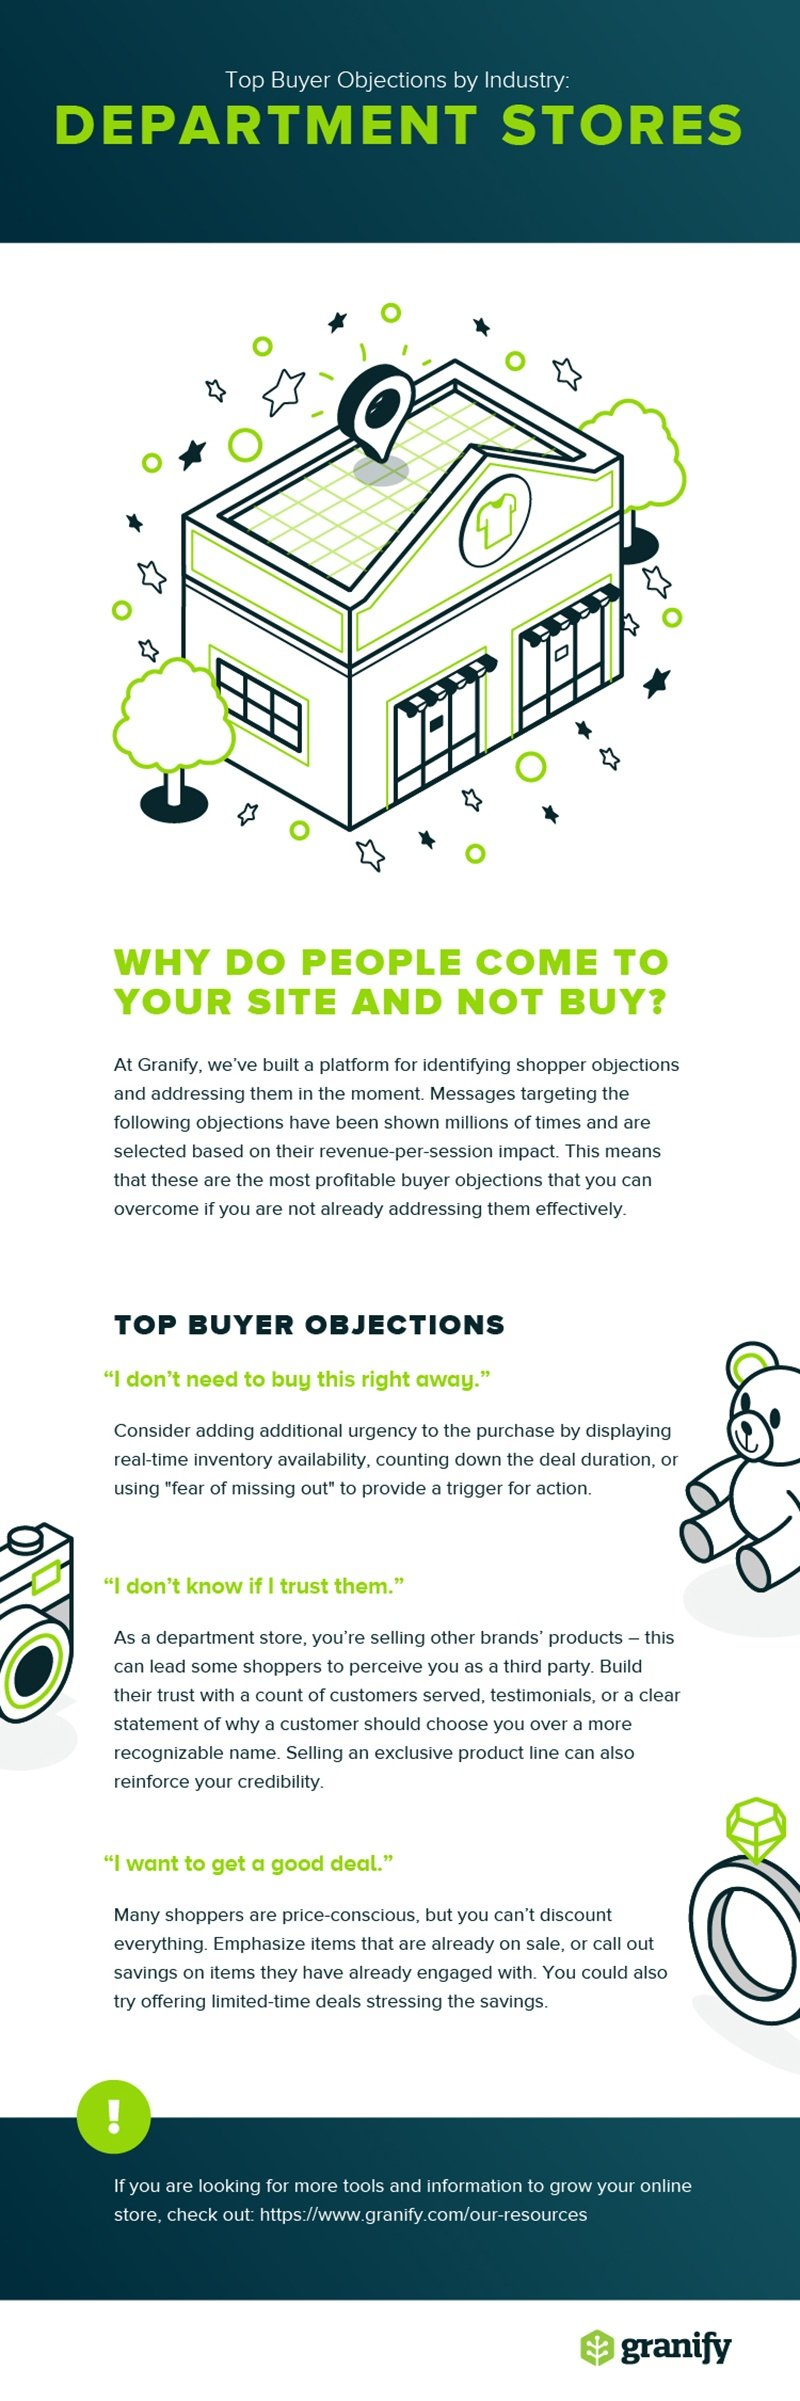 granify_Department_objections_Infographic-144